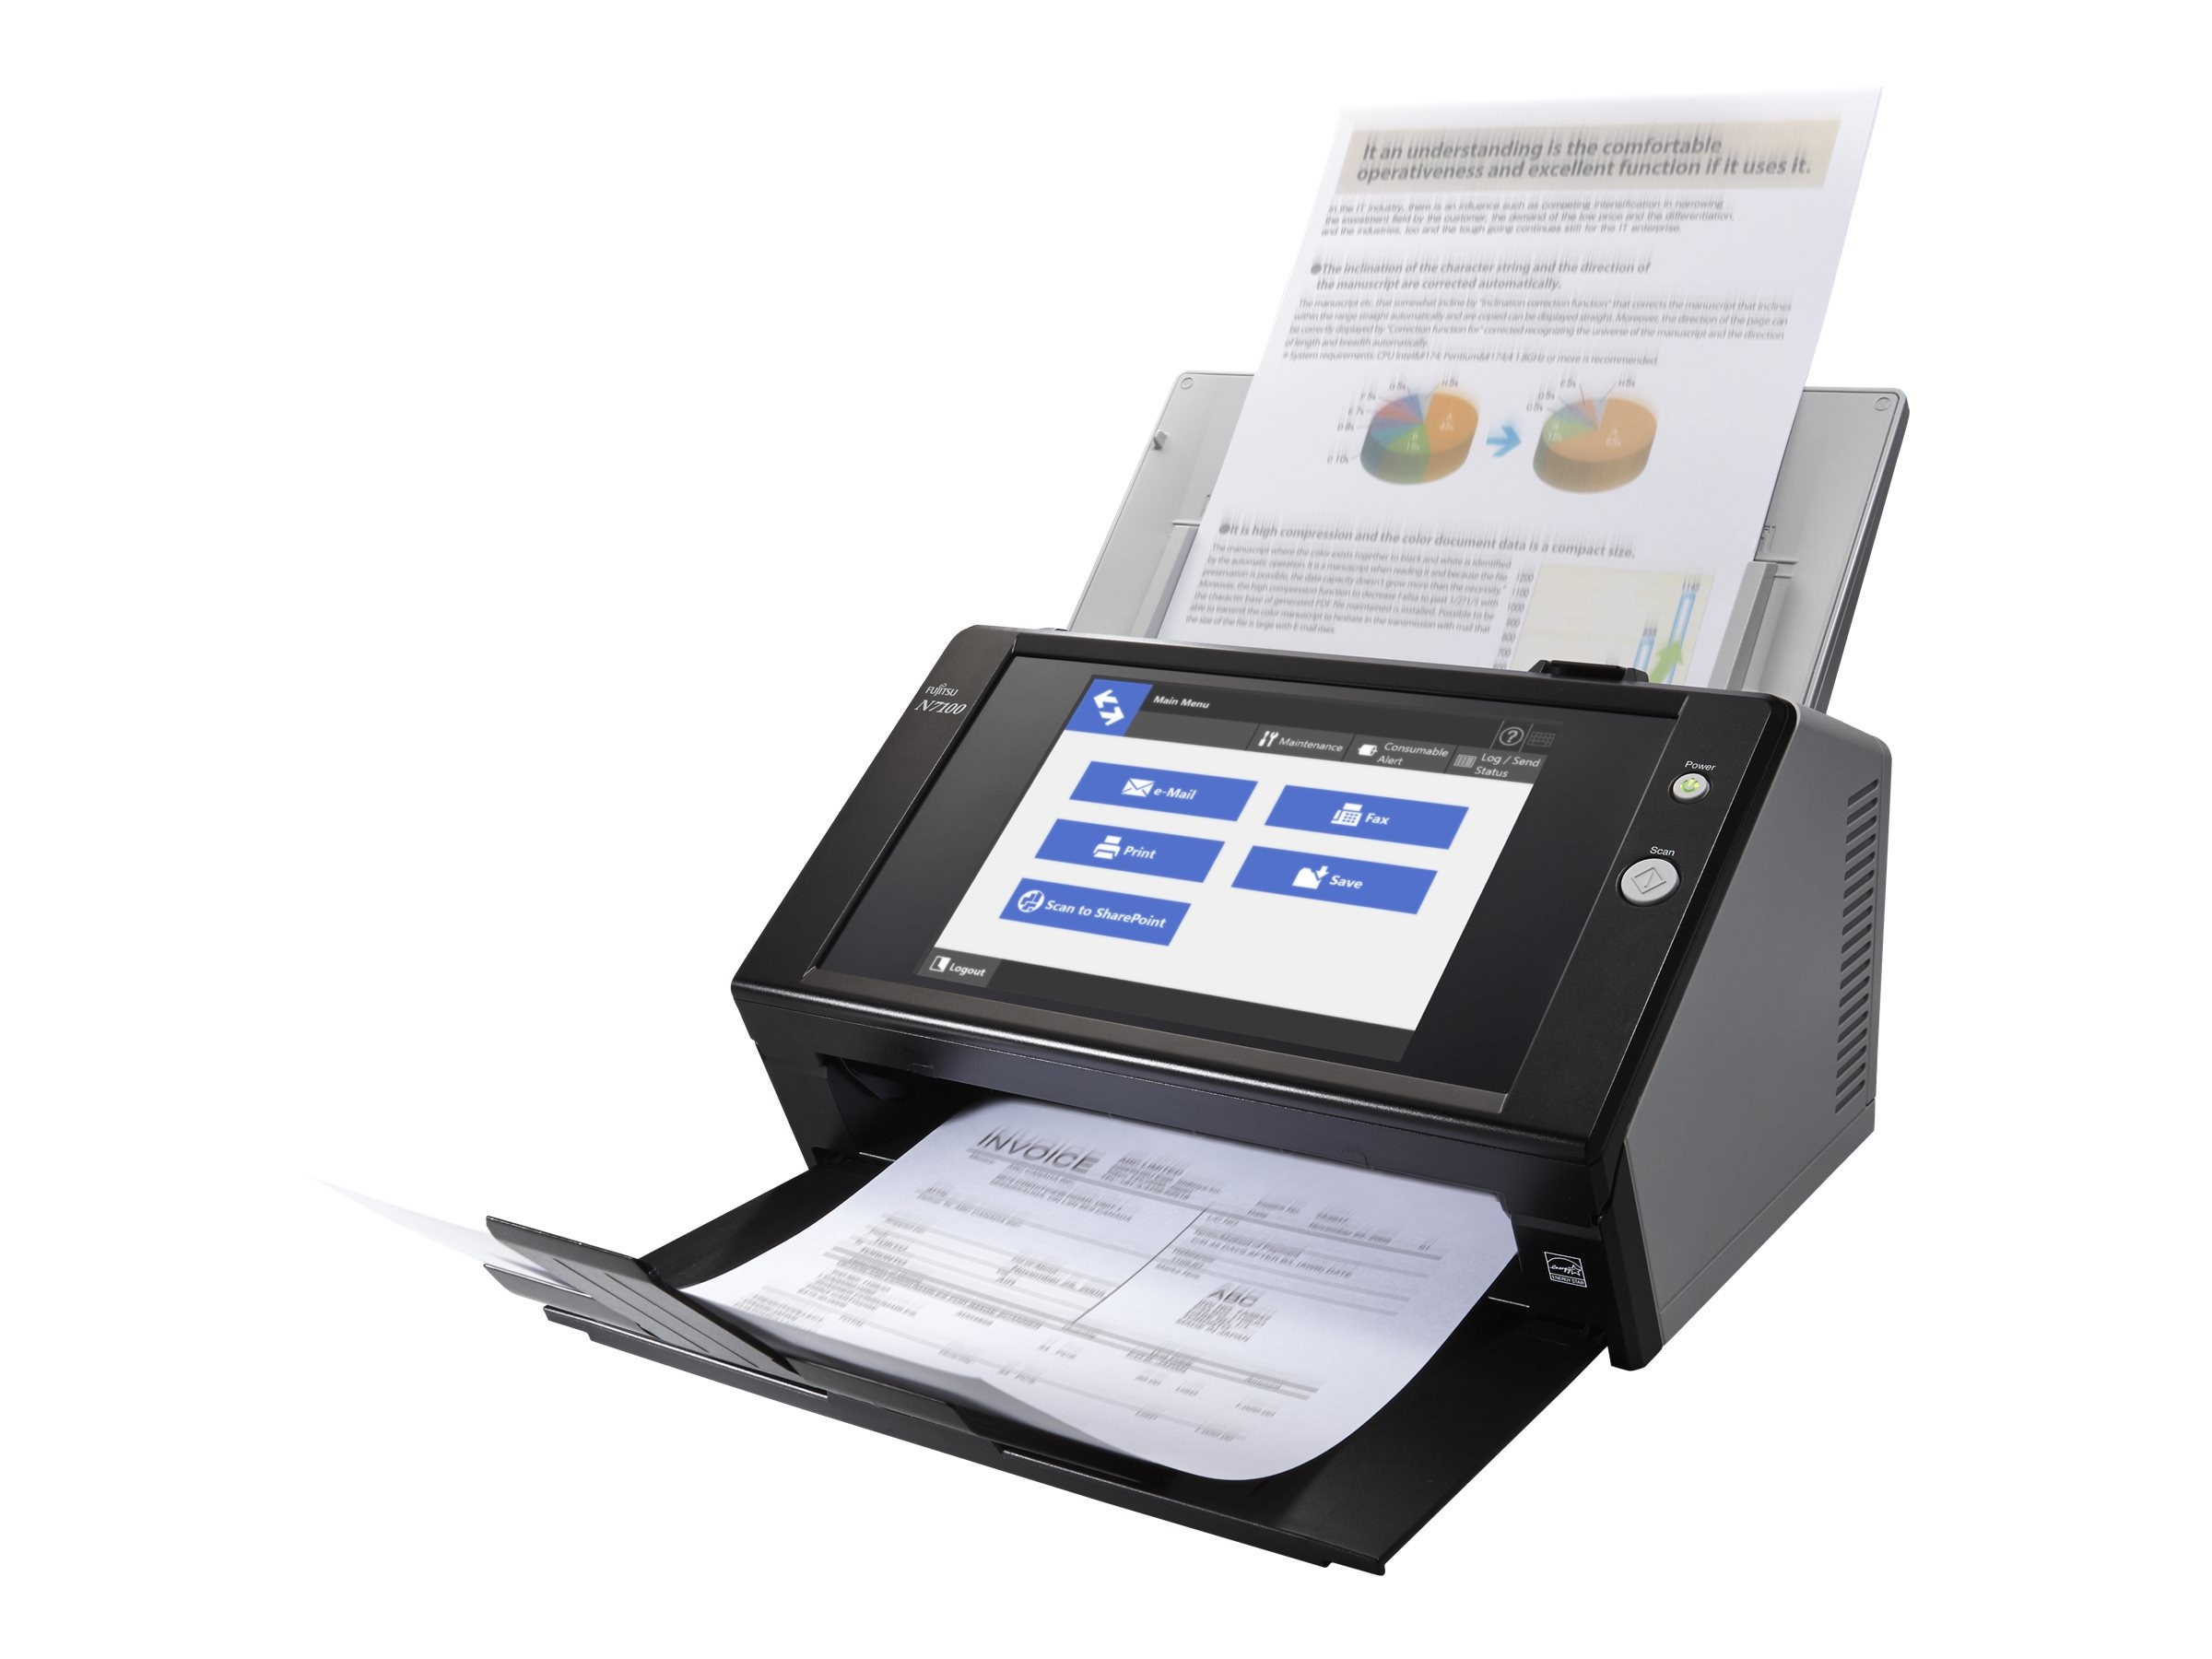 Refurb. Fujitsu N7100 Color Network Scanner, PA03706-B205-R